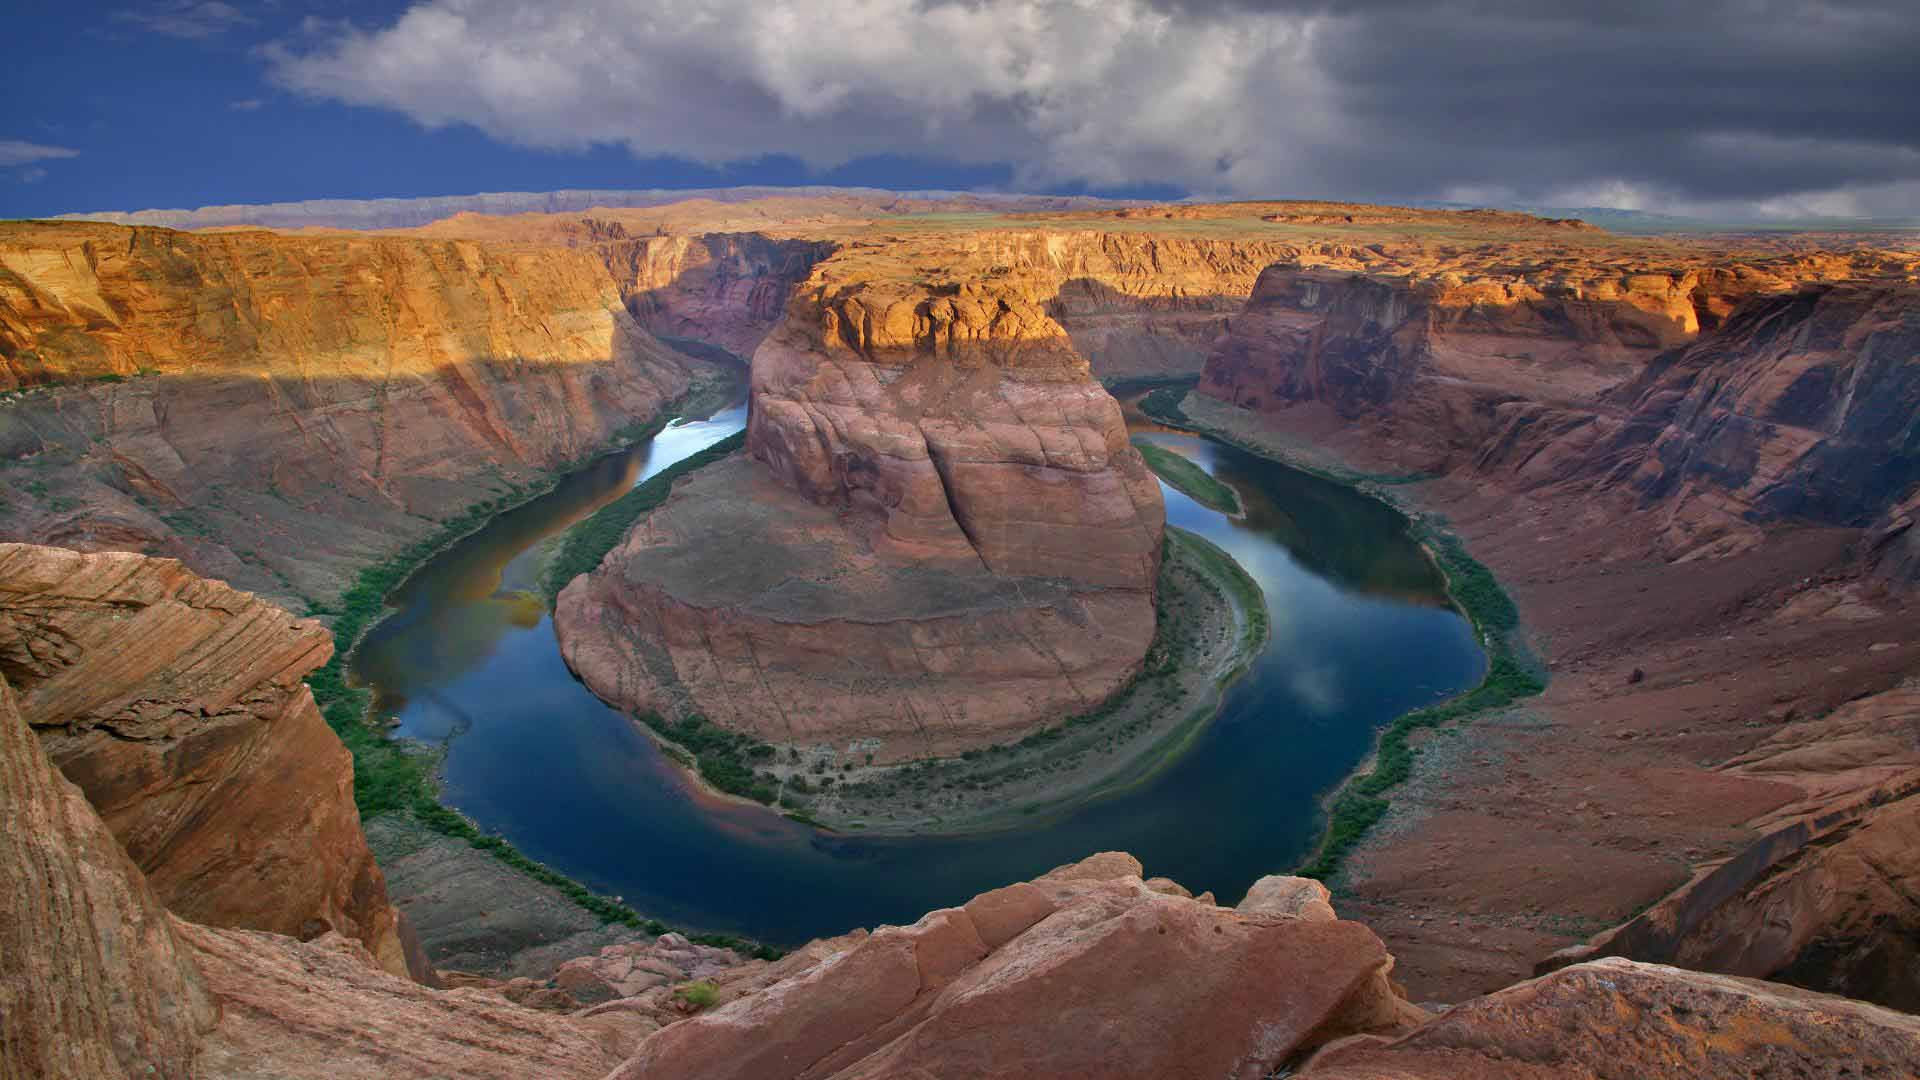 Horseshoe Bend Overlook, Near Page, Arizona